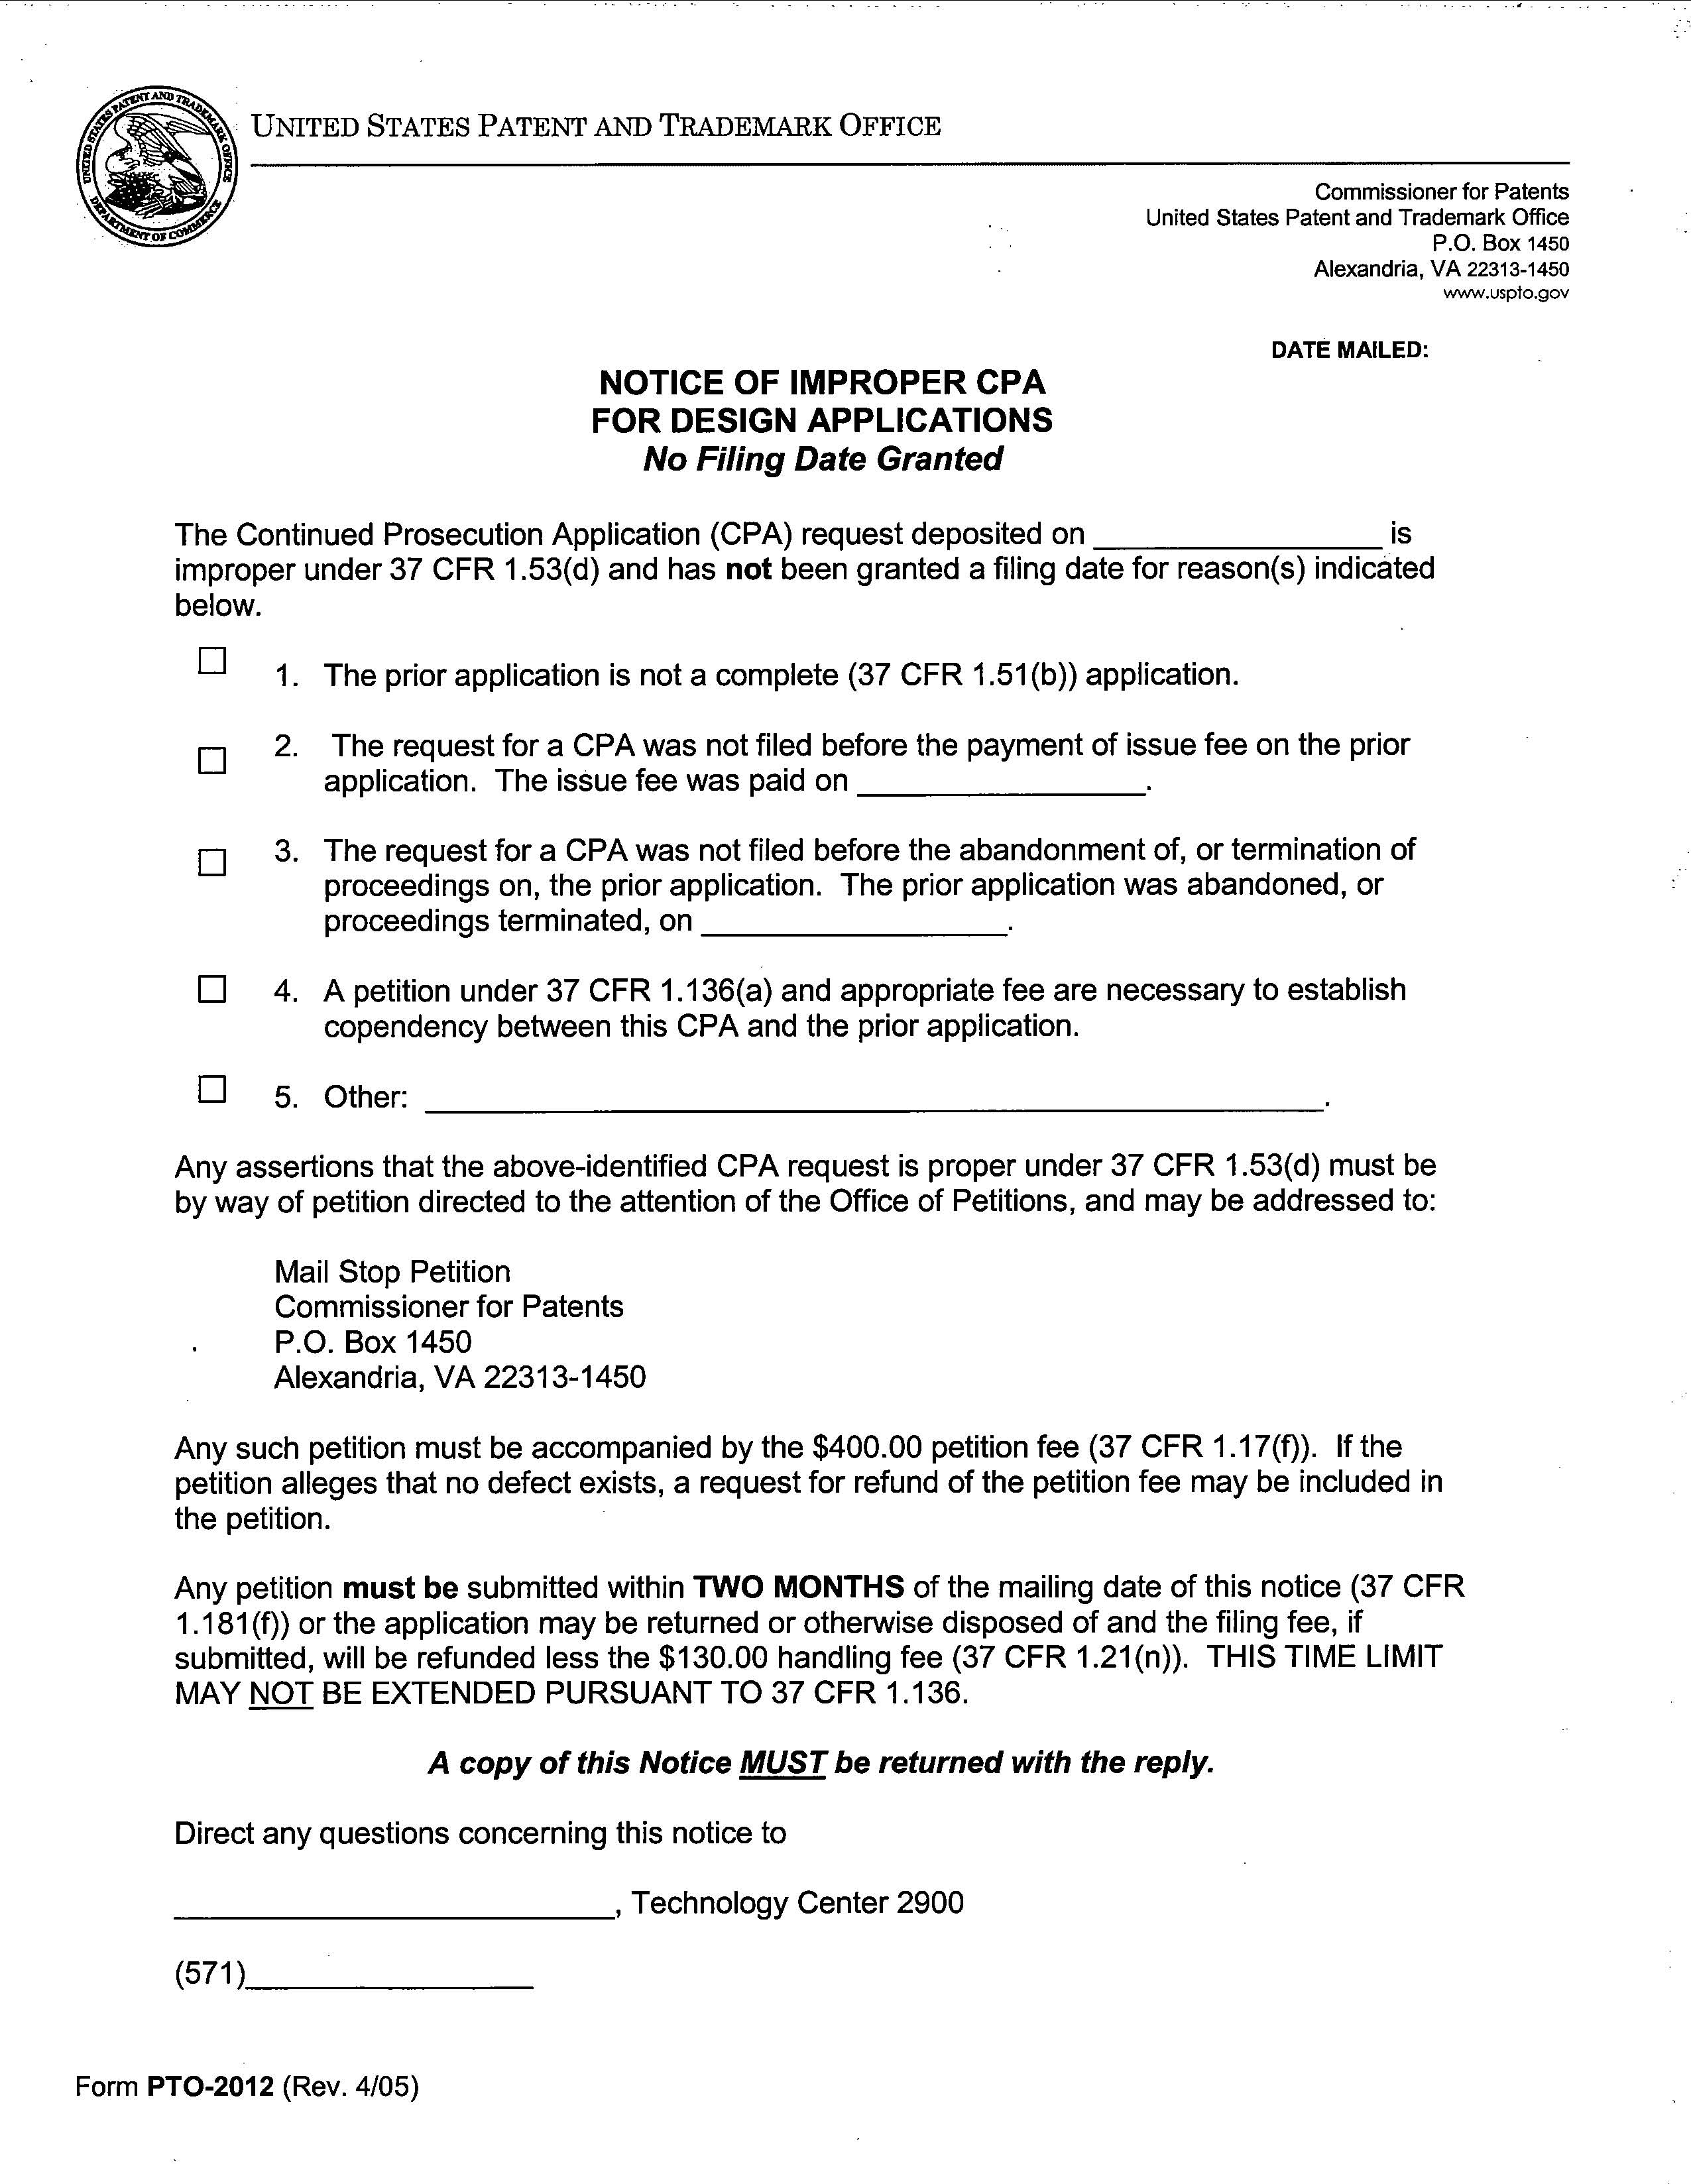 Mpep form pto 2012 notice of improper cpa for design applications no filing date granted falaconquin